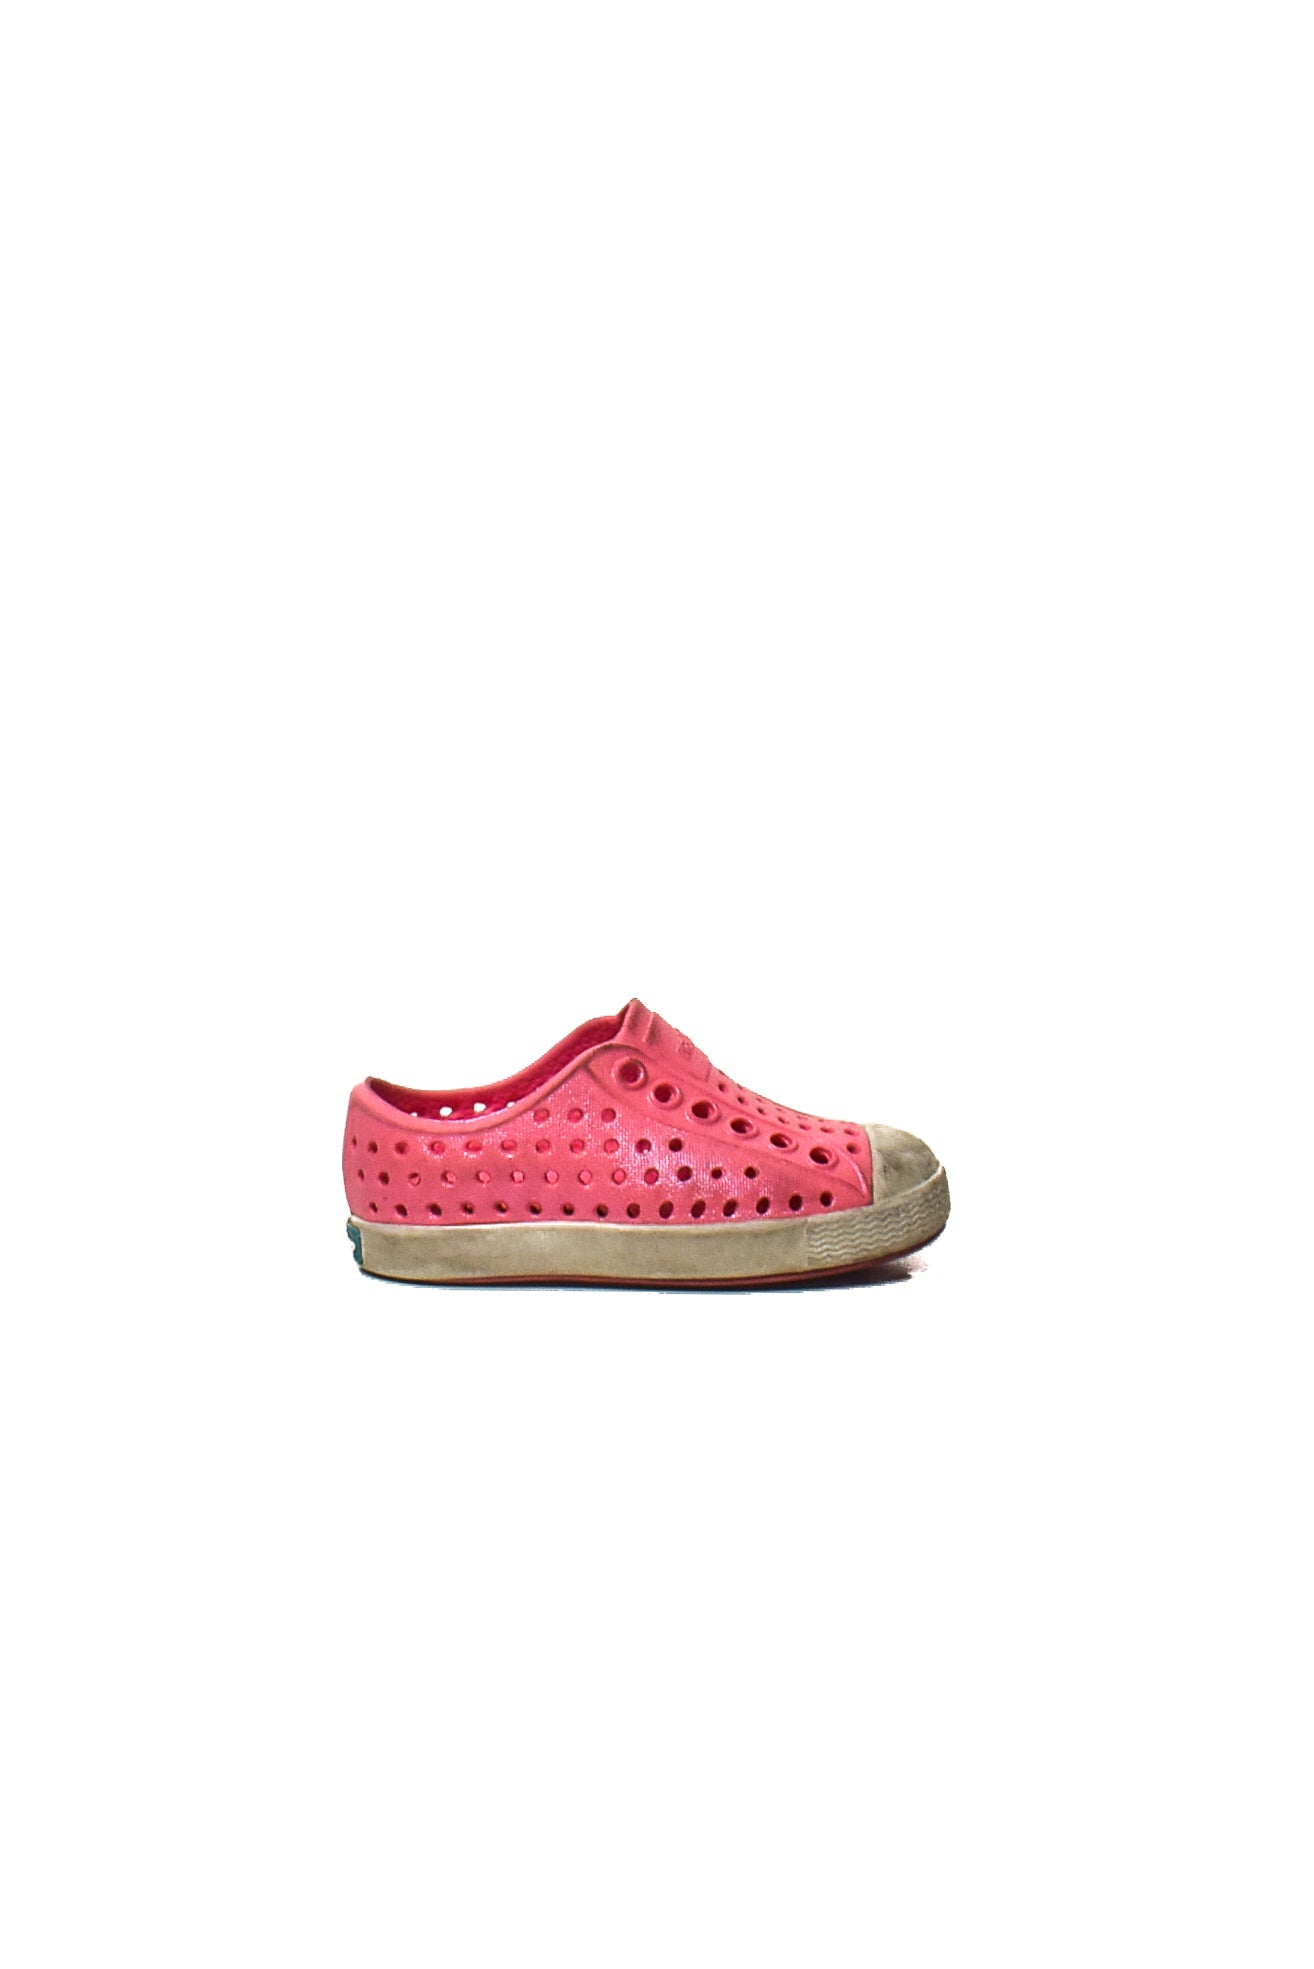 Native Shoes At Up To 90 Off At Retykle